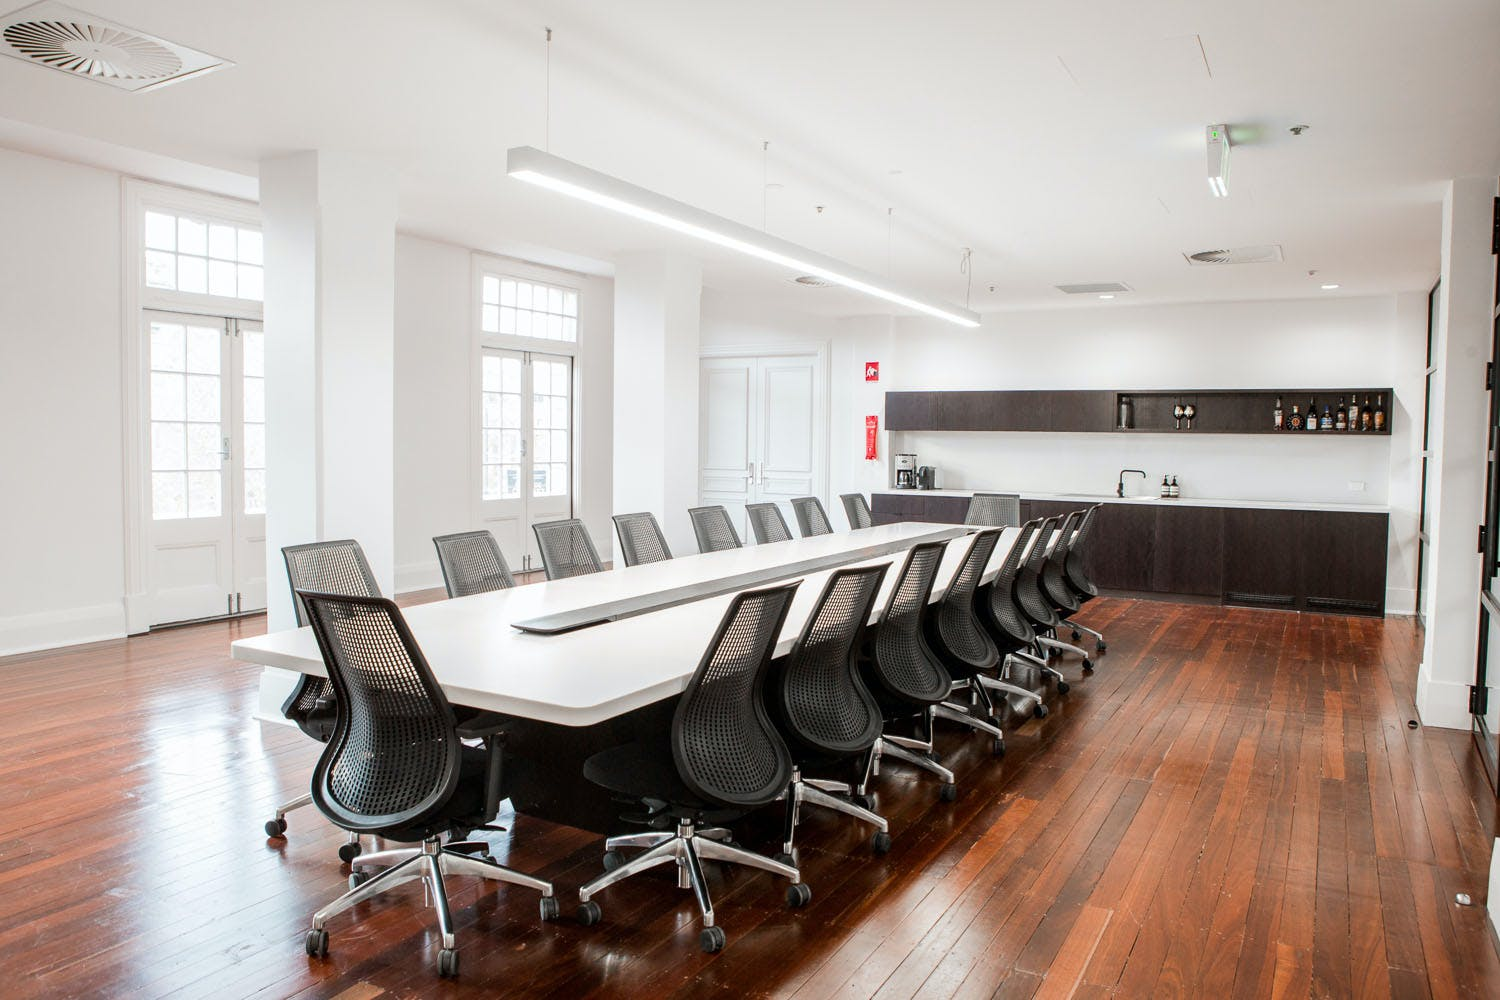 Meeting room at Security House, image 4